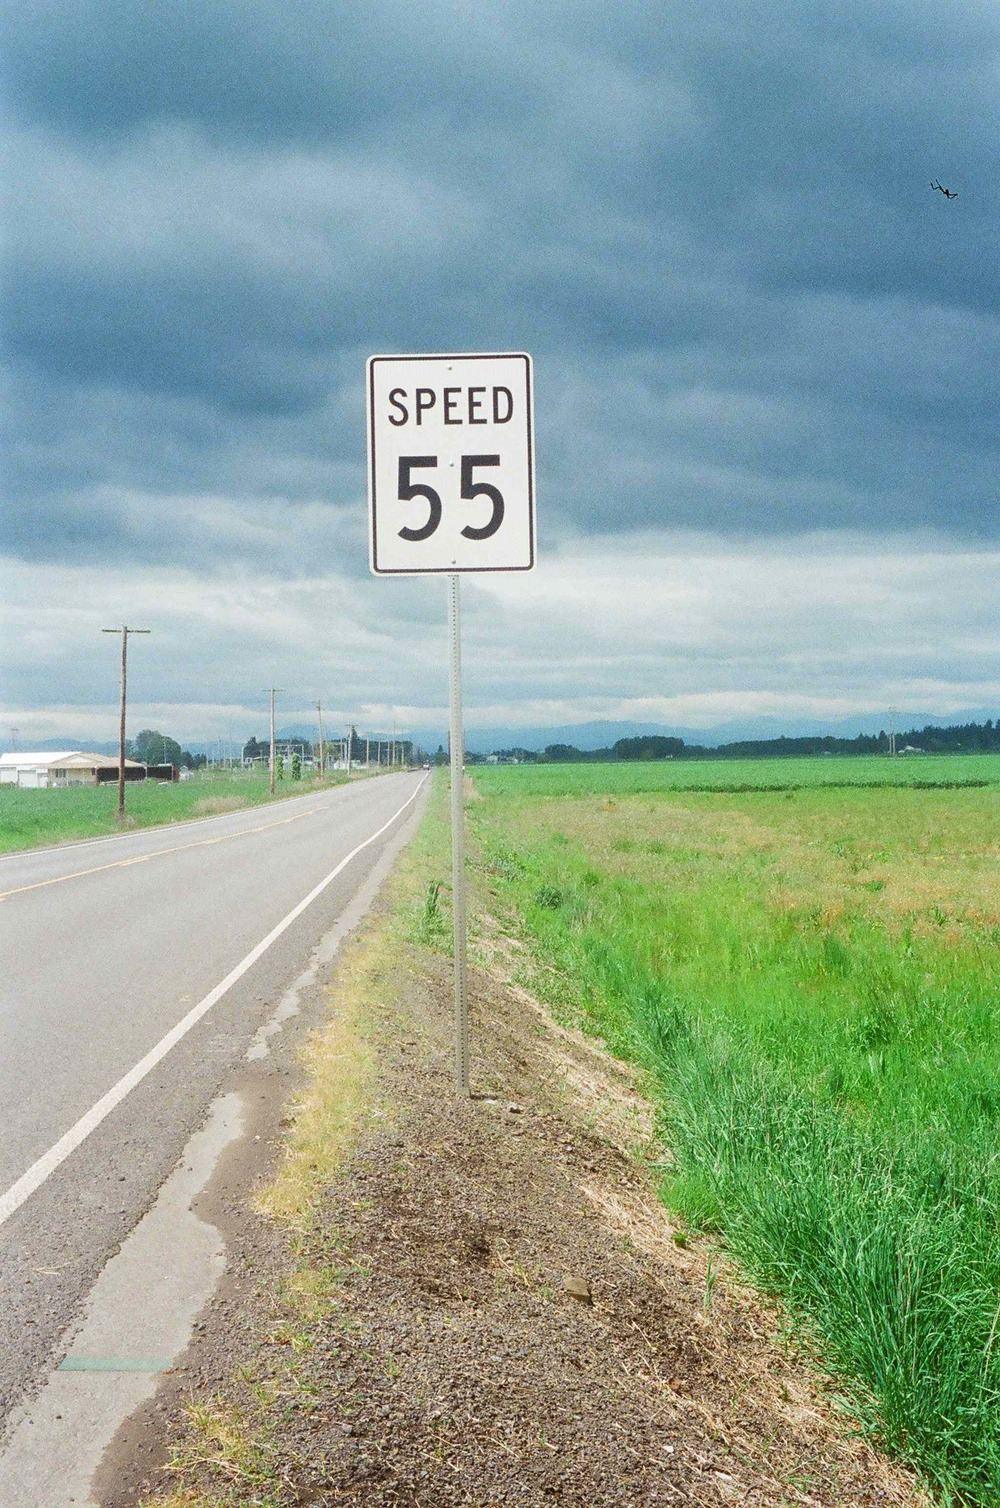 We limit our highway speeds to 55 mph in order to conserve fuel and reduce emissions. Generally, this creates a 15% fuel savings per mile, and a similar reduction in greenhouse gas emissions, when compared to a vehicle going 65 mph.  EPA test results show that light duty gas powered vehicles traveling at 55 mph create substantially less emissions than when the same vehicle travels at 65 mph: nitrous oxides are reduced by 8% per mile, volatile organic compounds decreases 35% per mile, and carbon monoxide declines 60% per mile.